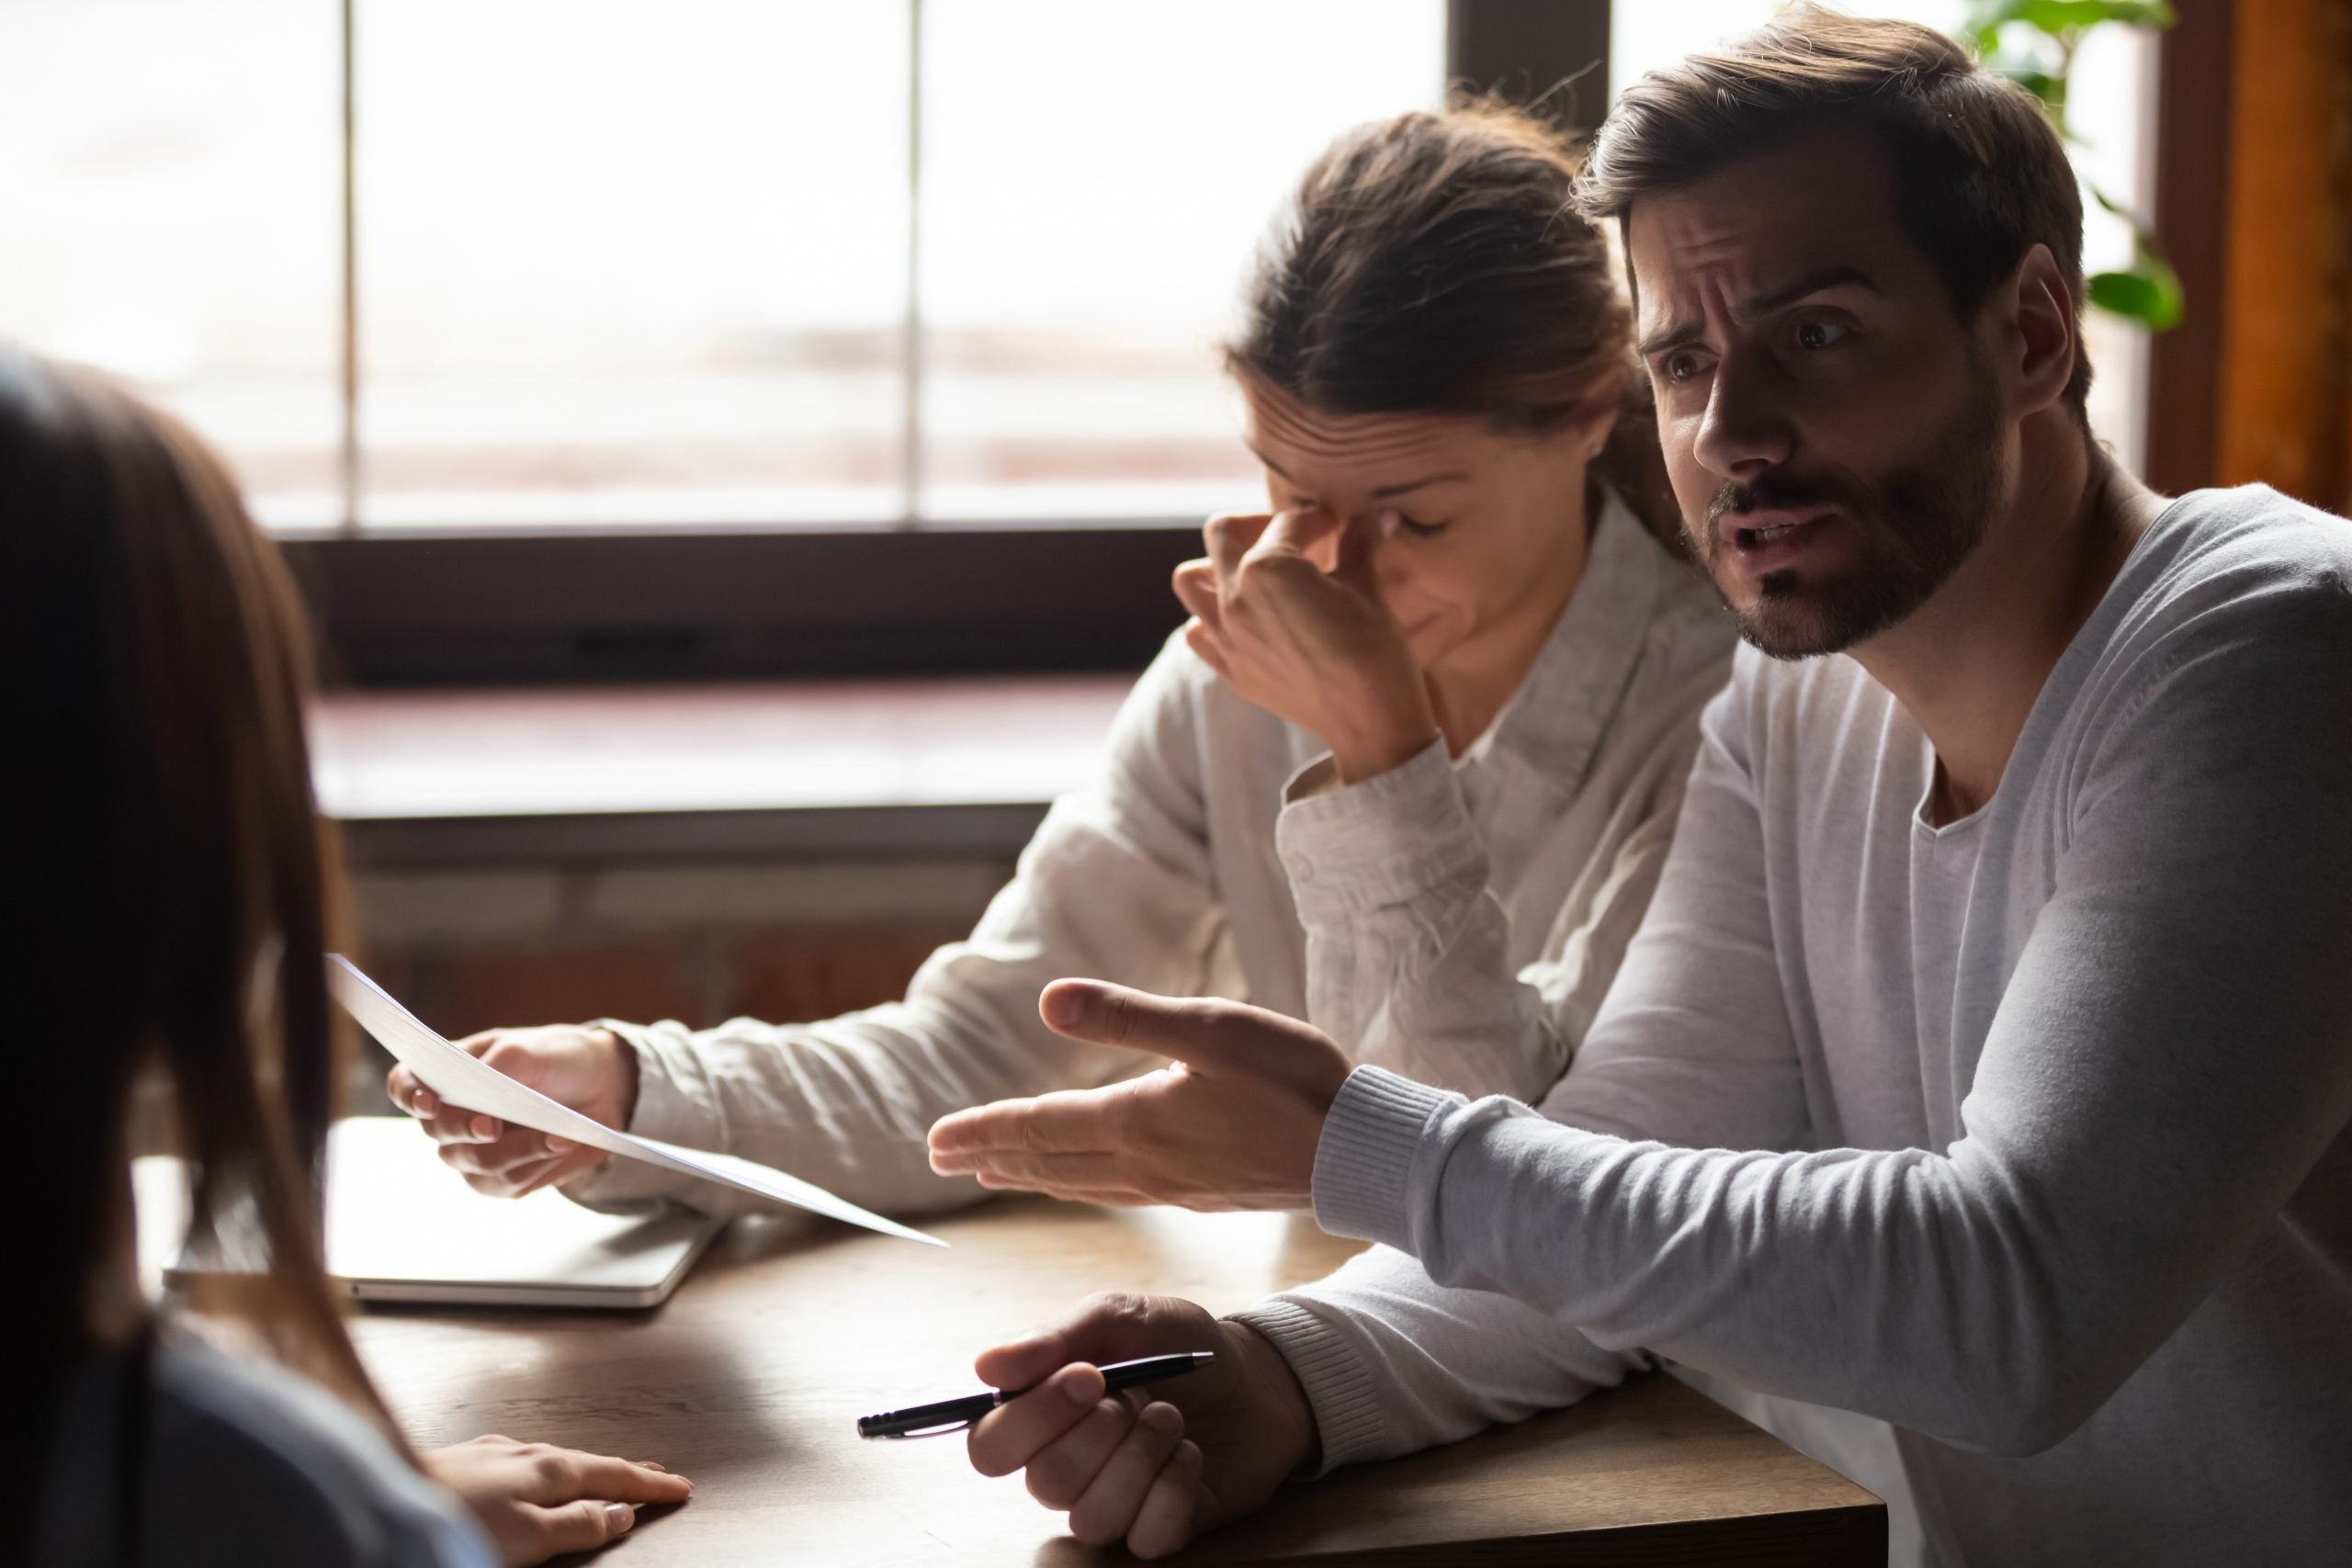 In How's Work?, Esther Perel takes on professional relationships